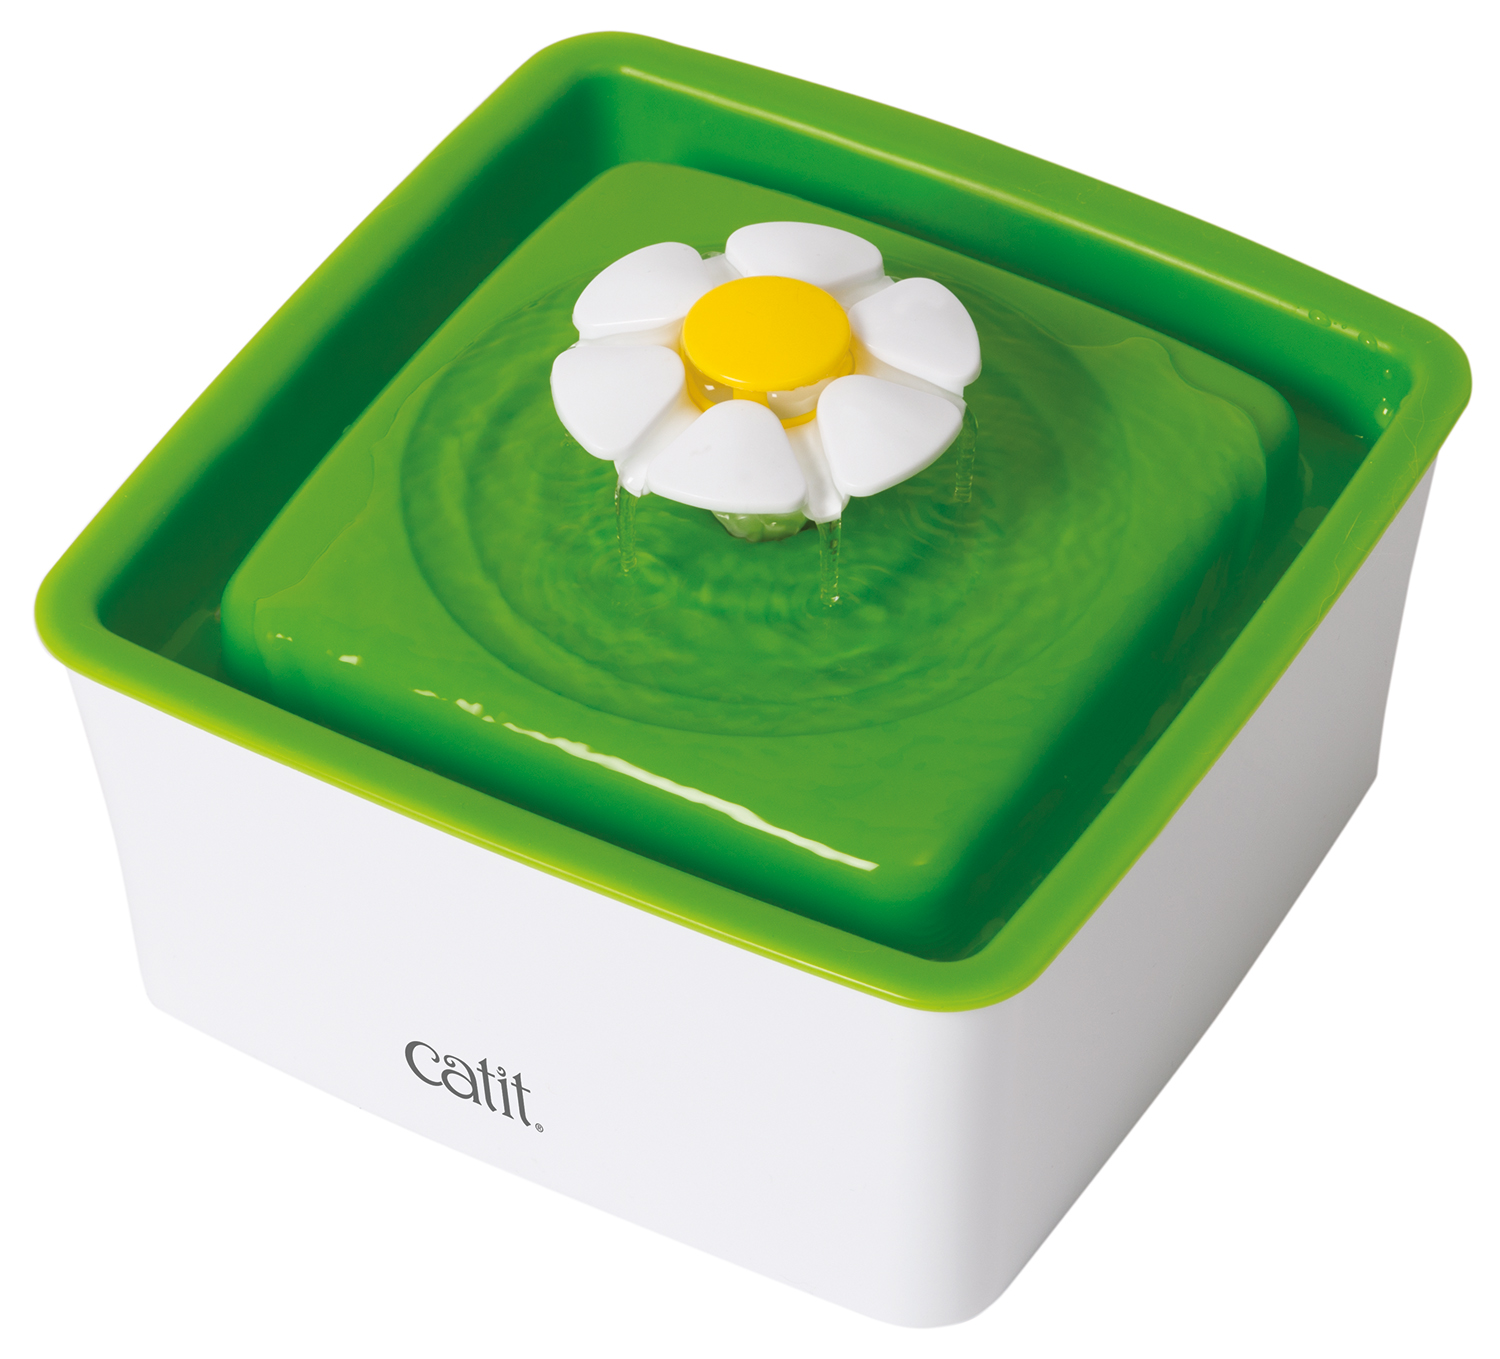 Hagen Catit 2.0 Flower Fountain MINI